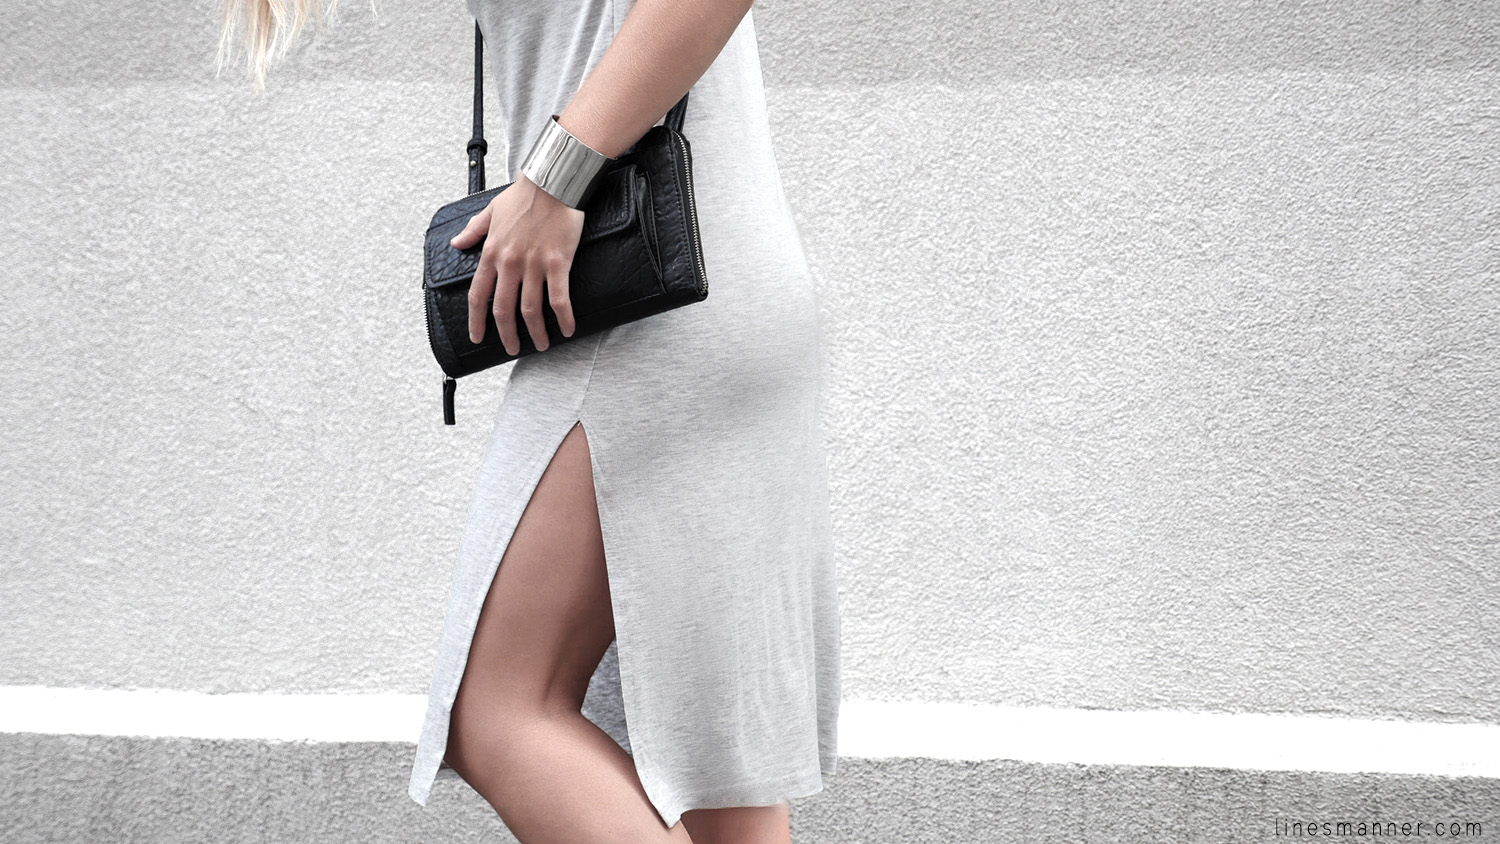 Lines-Manner-Remind-2015-Minimal-Essential-Outfit-Inspiration-Blog-Timeless-Year-Seasons-Details-Travel-Fashion-Versatile-Clean-Sleek-Quality-50